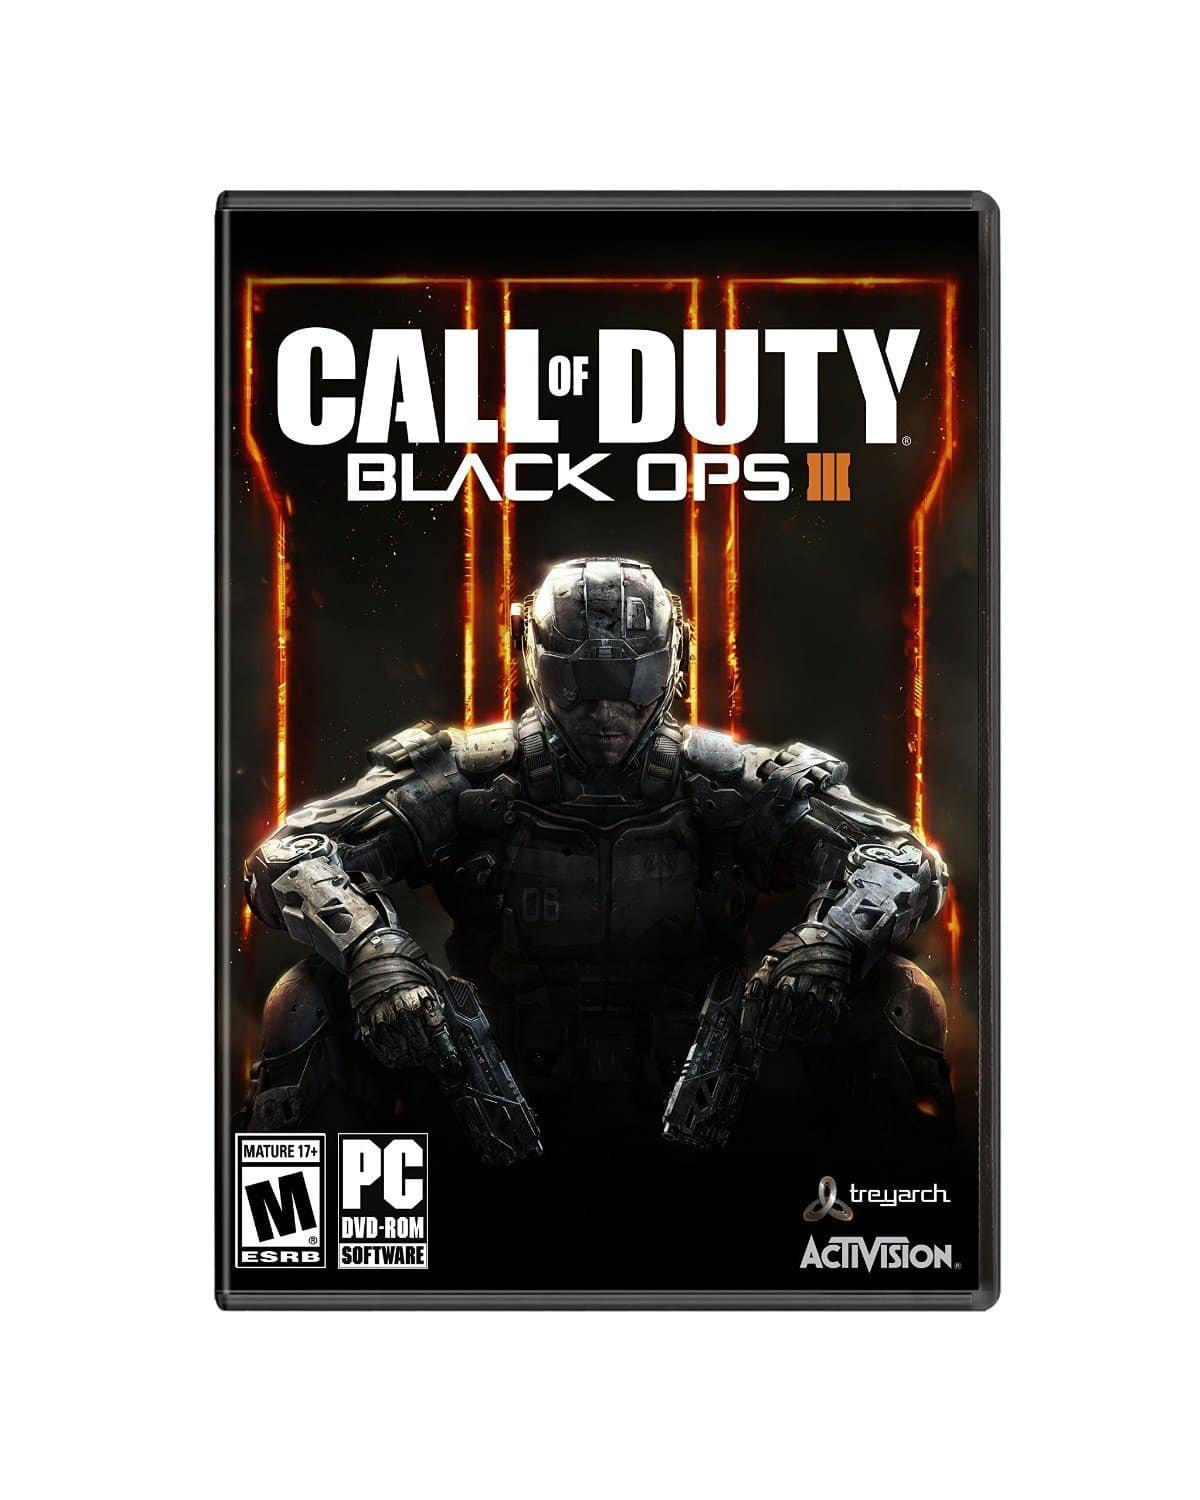 Call of Duty: Black Ops III (PC Game)  $22